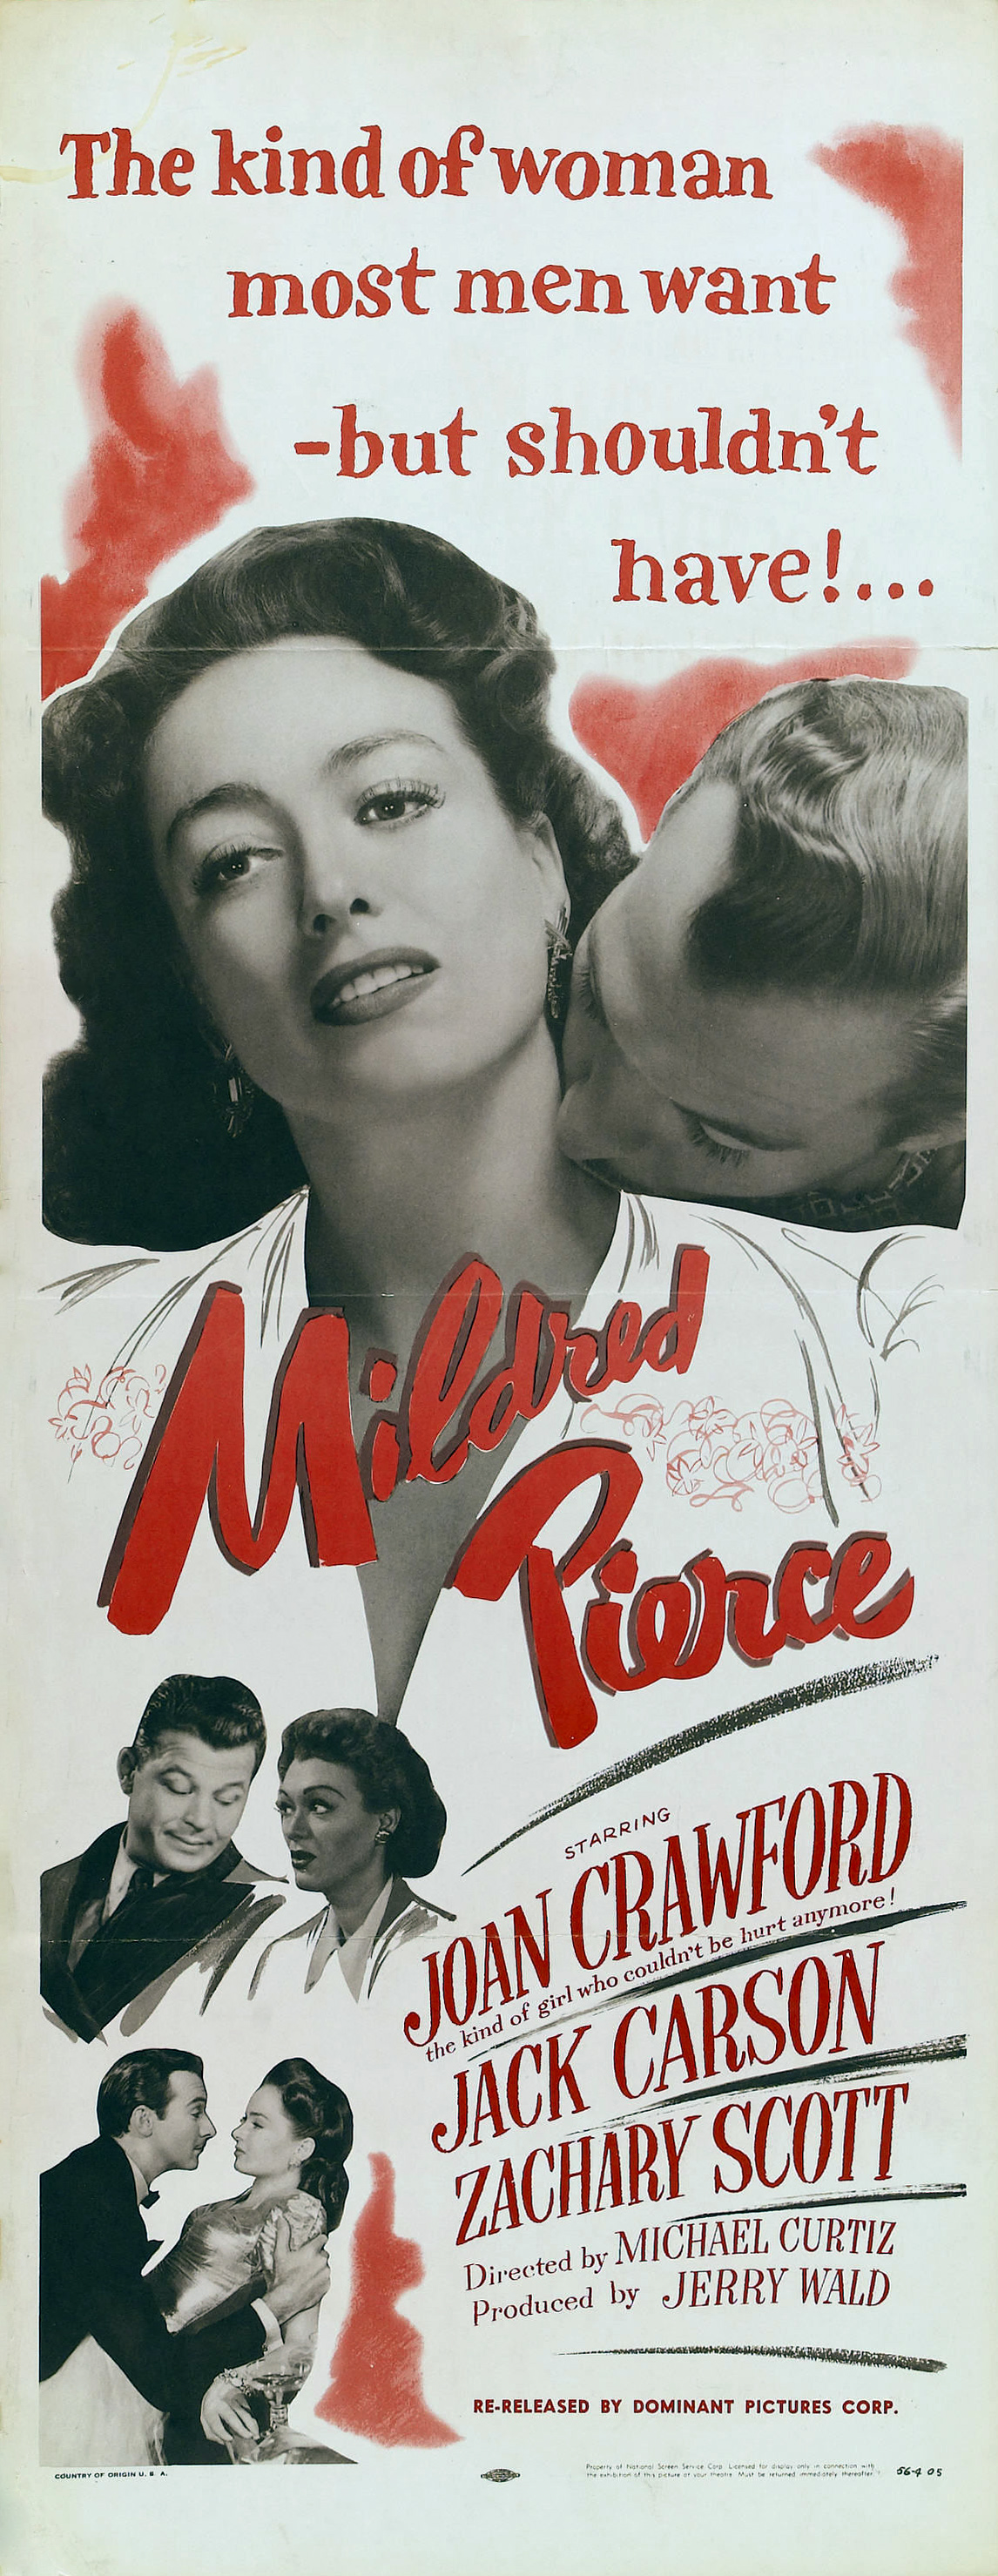 mildred pierce film The official website for mildred pierce on hbo, featuring full episodes online, interviews, schedule information and episode guides.